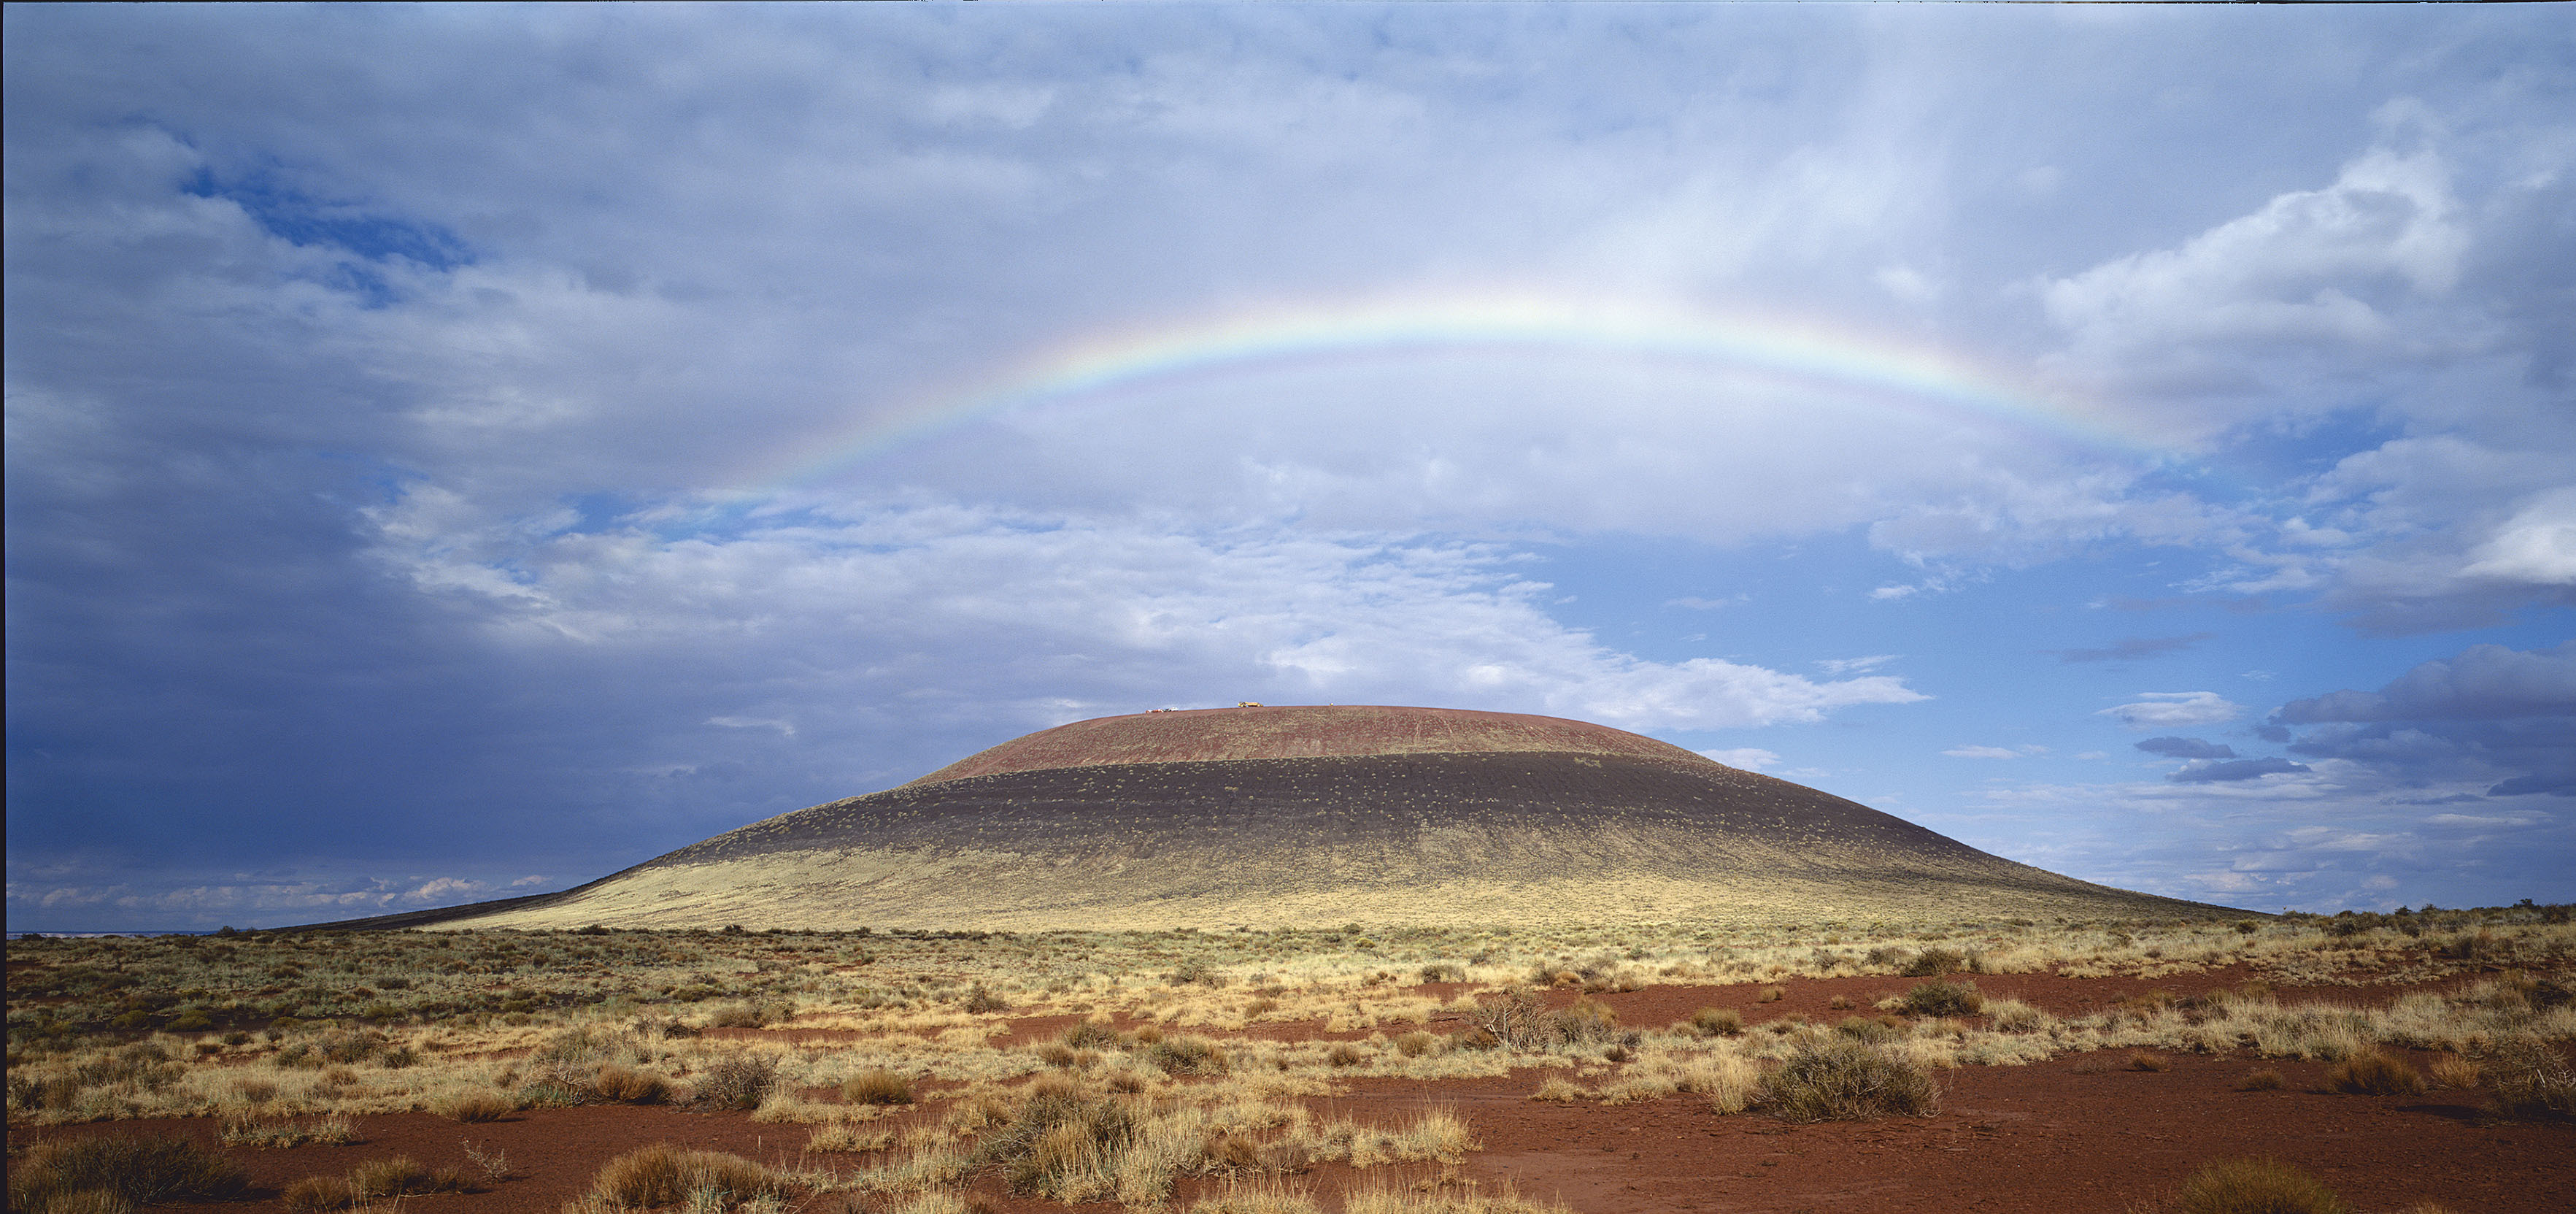 Forty years ago, Turrell purchased the Roden Crater in northern Arizona. He has been working to turn the extinct volcanic crater into a work of art for the last three decades.